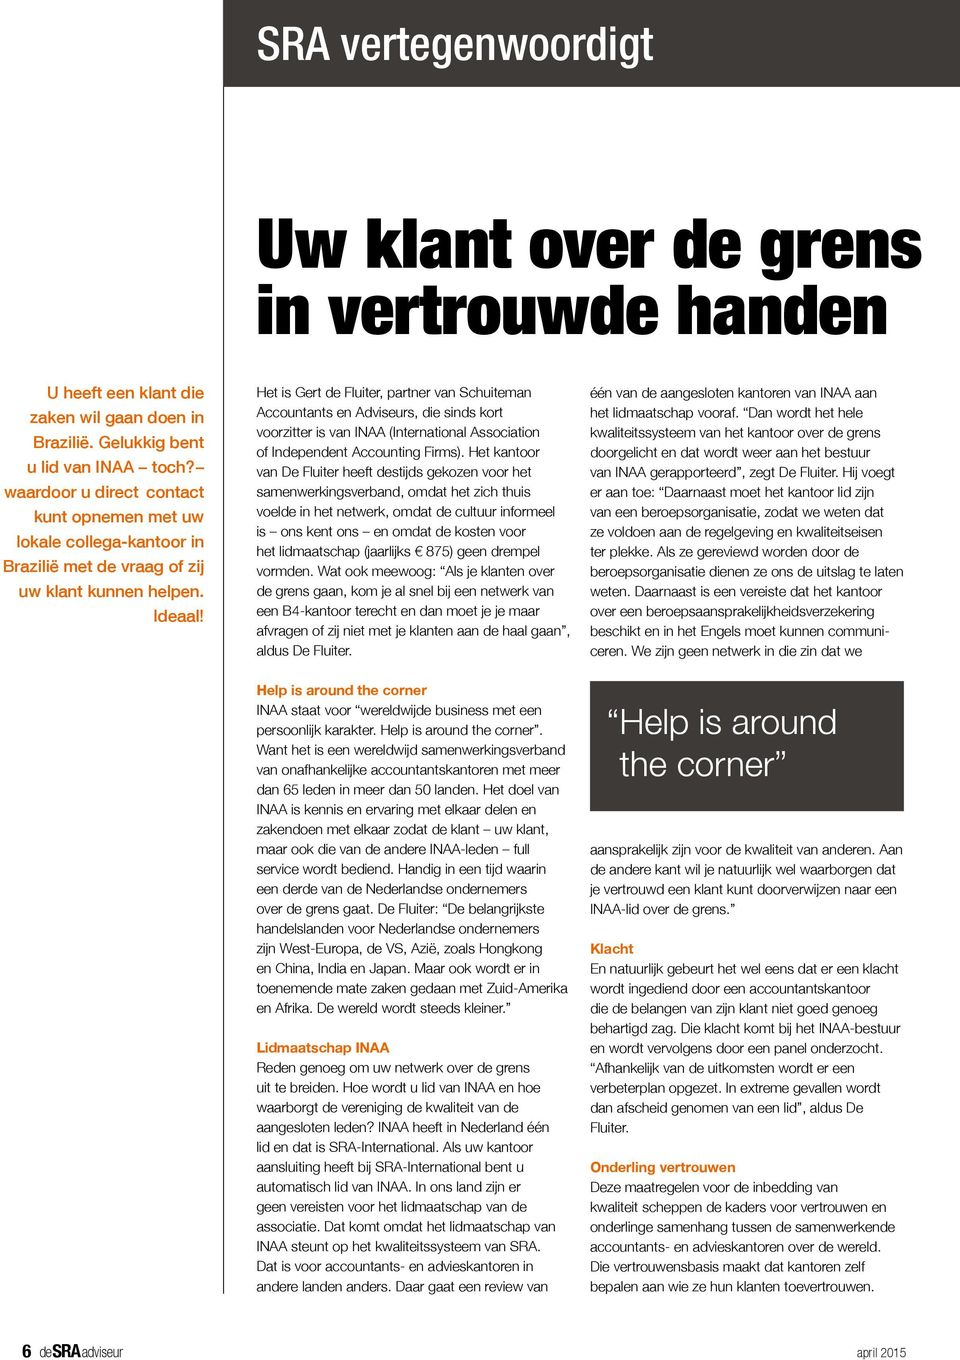 Het is Gert de Fluiter, partner van Schuiteman Accountants en Adviseurs, die sinds kort voorzitter is van INAA (International Association of Independent Accounting Firms).